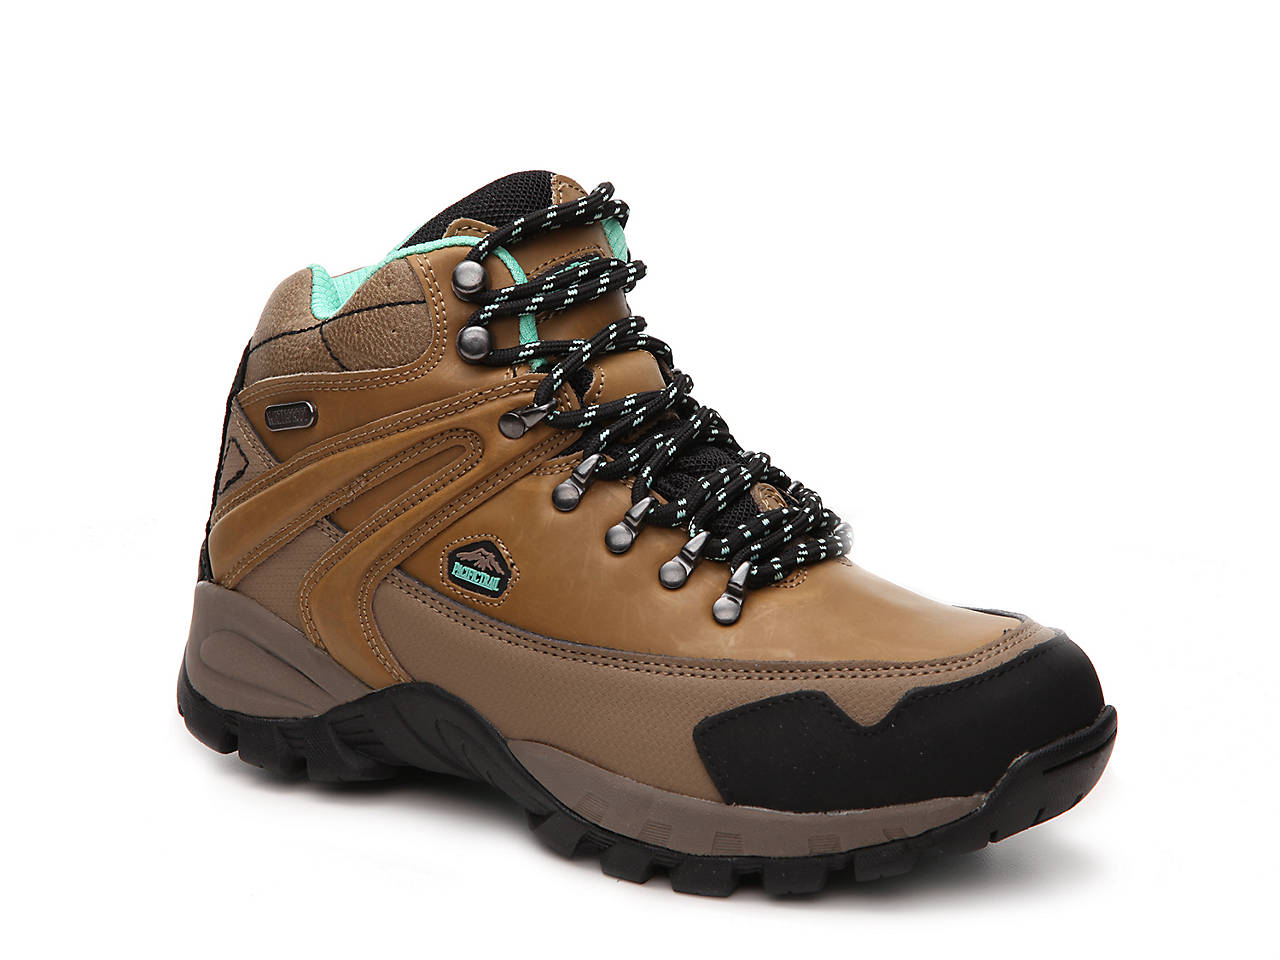 0da4b6359041 Pacific Trail Rainier Hiking Boot Women s Shoes